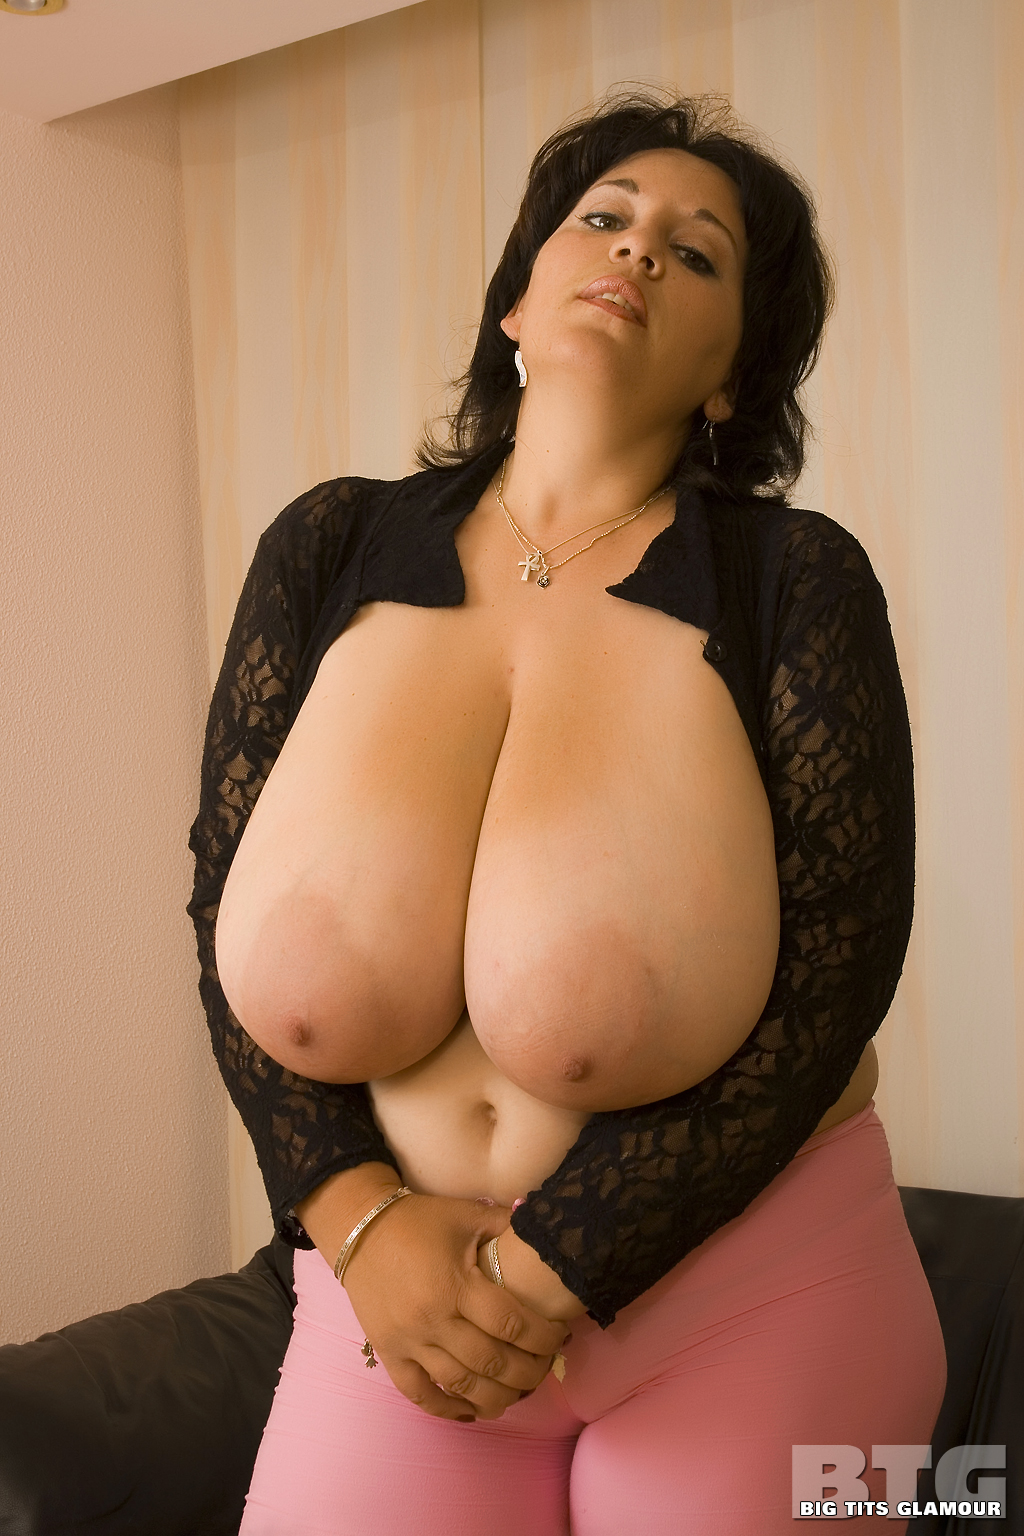 huge heavy breasts